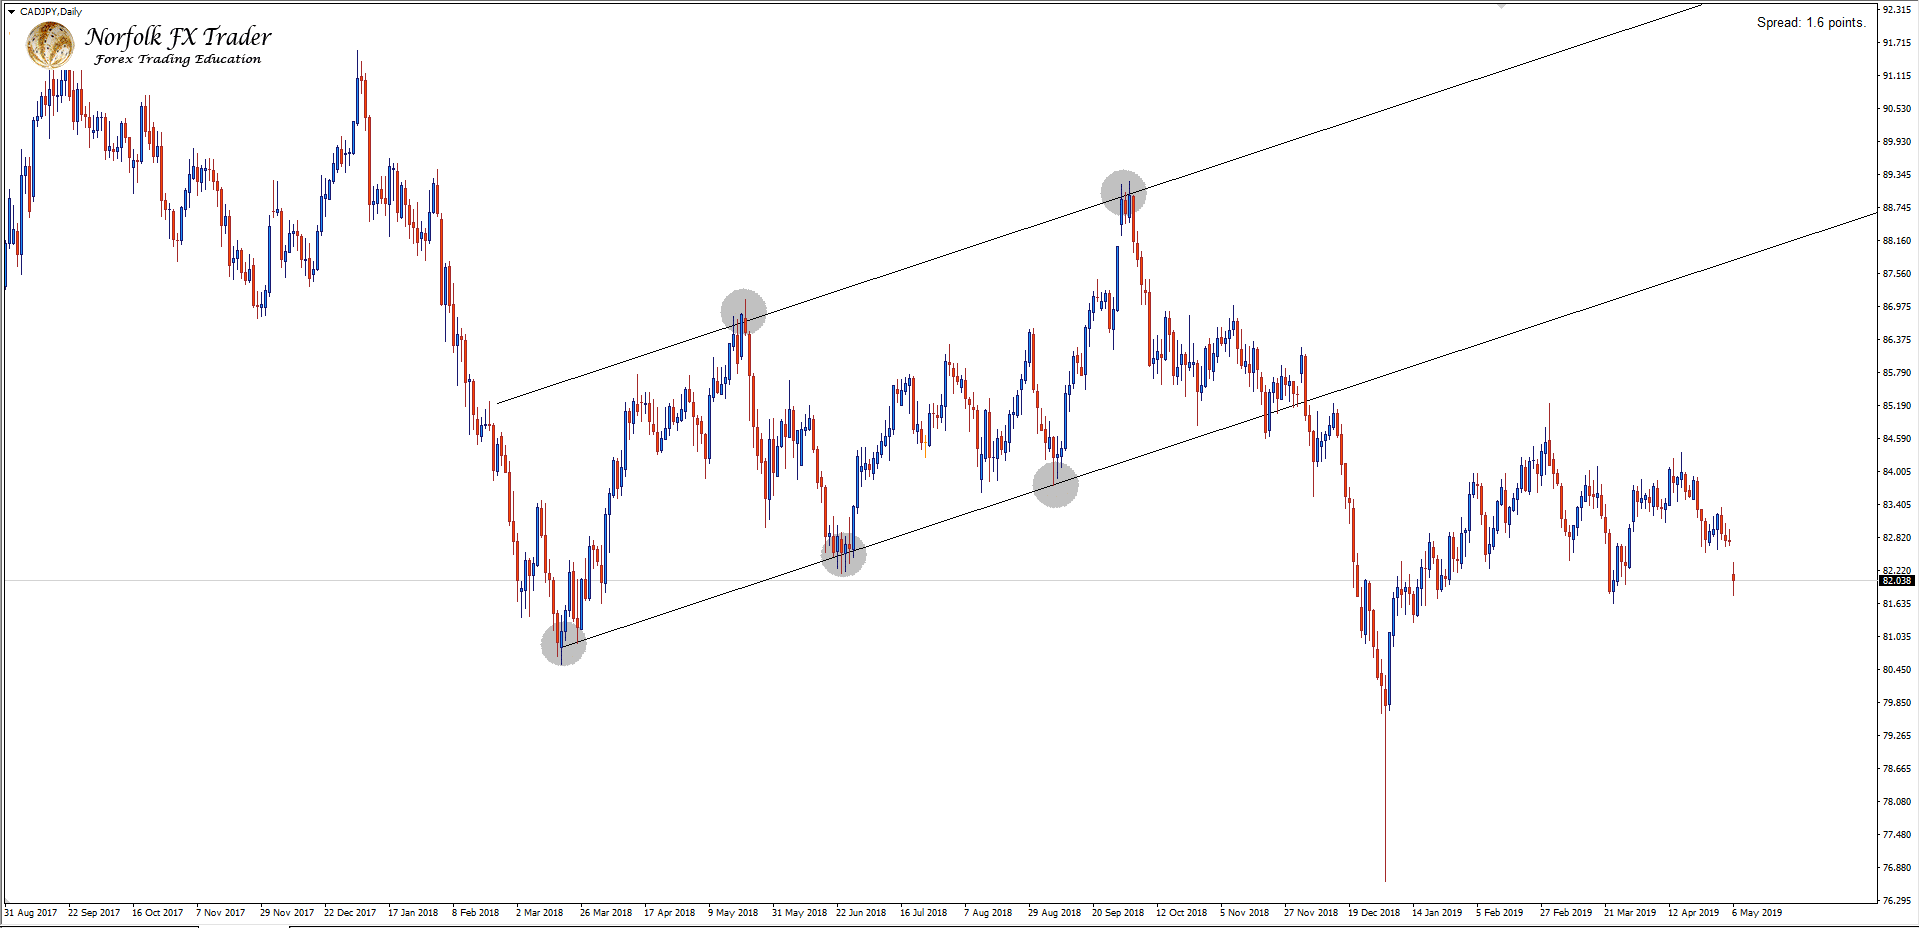 CADJPY Ascending channel with Forex market trading drawn incorrectly